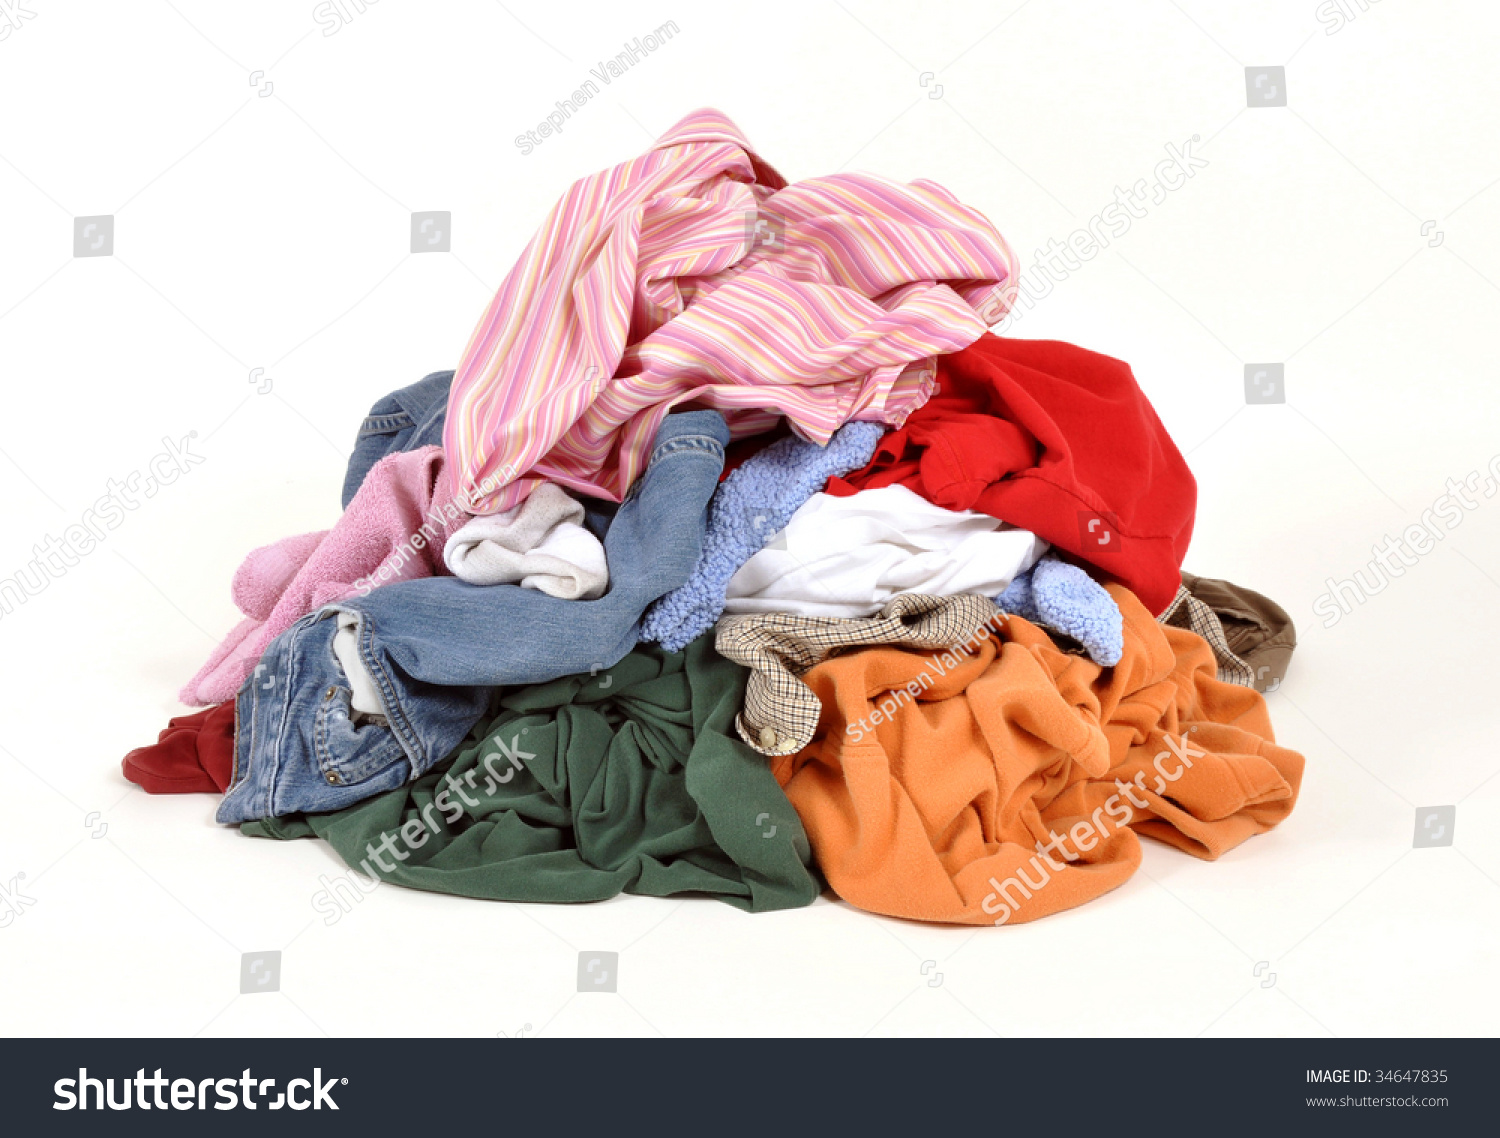 Dirty laundry clothing store